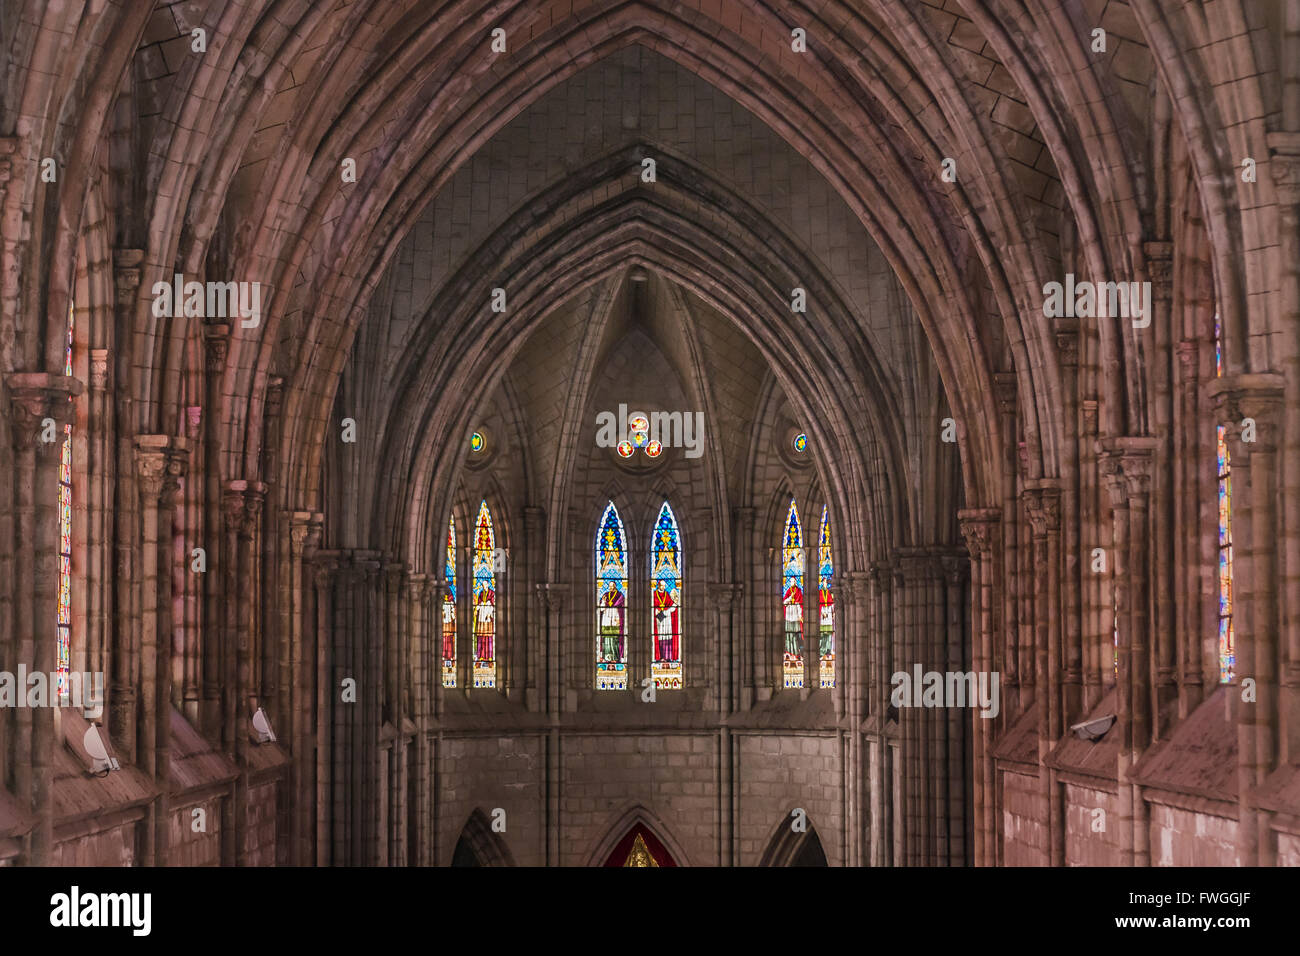 Interior View Of Main Craft Neo Gothic Style San Juan Basilica Church Located In Quito Ecuador